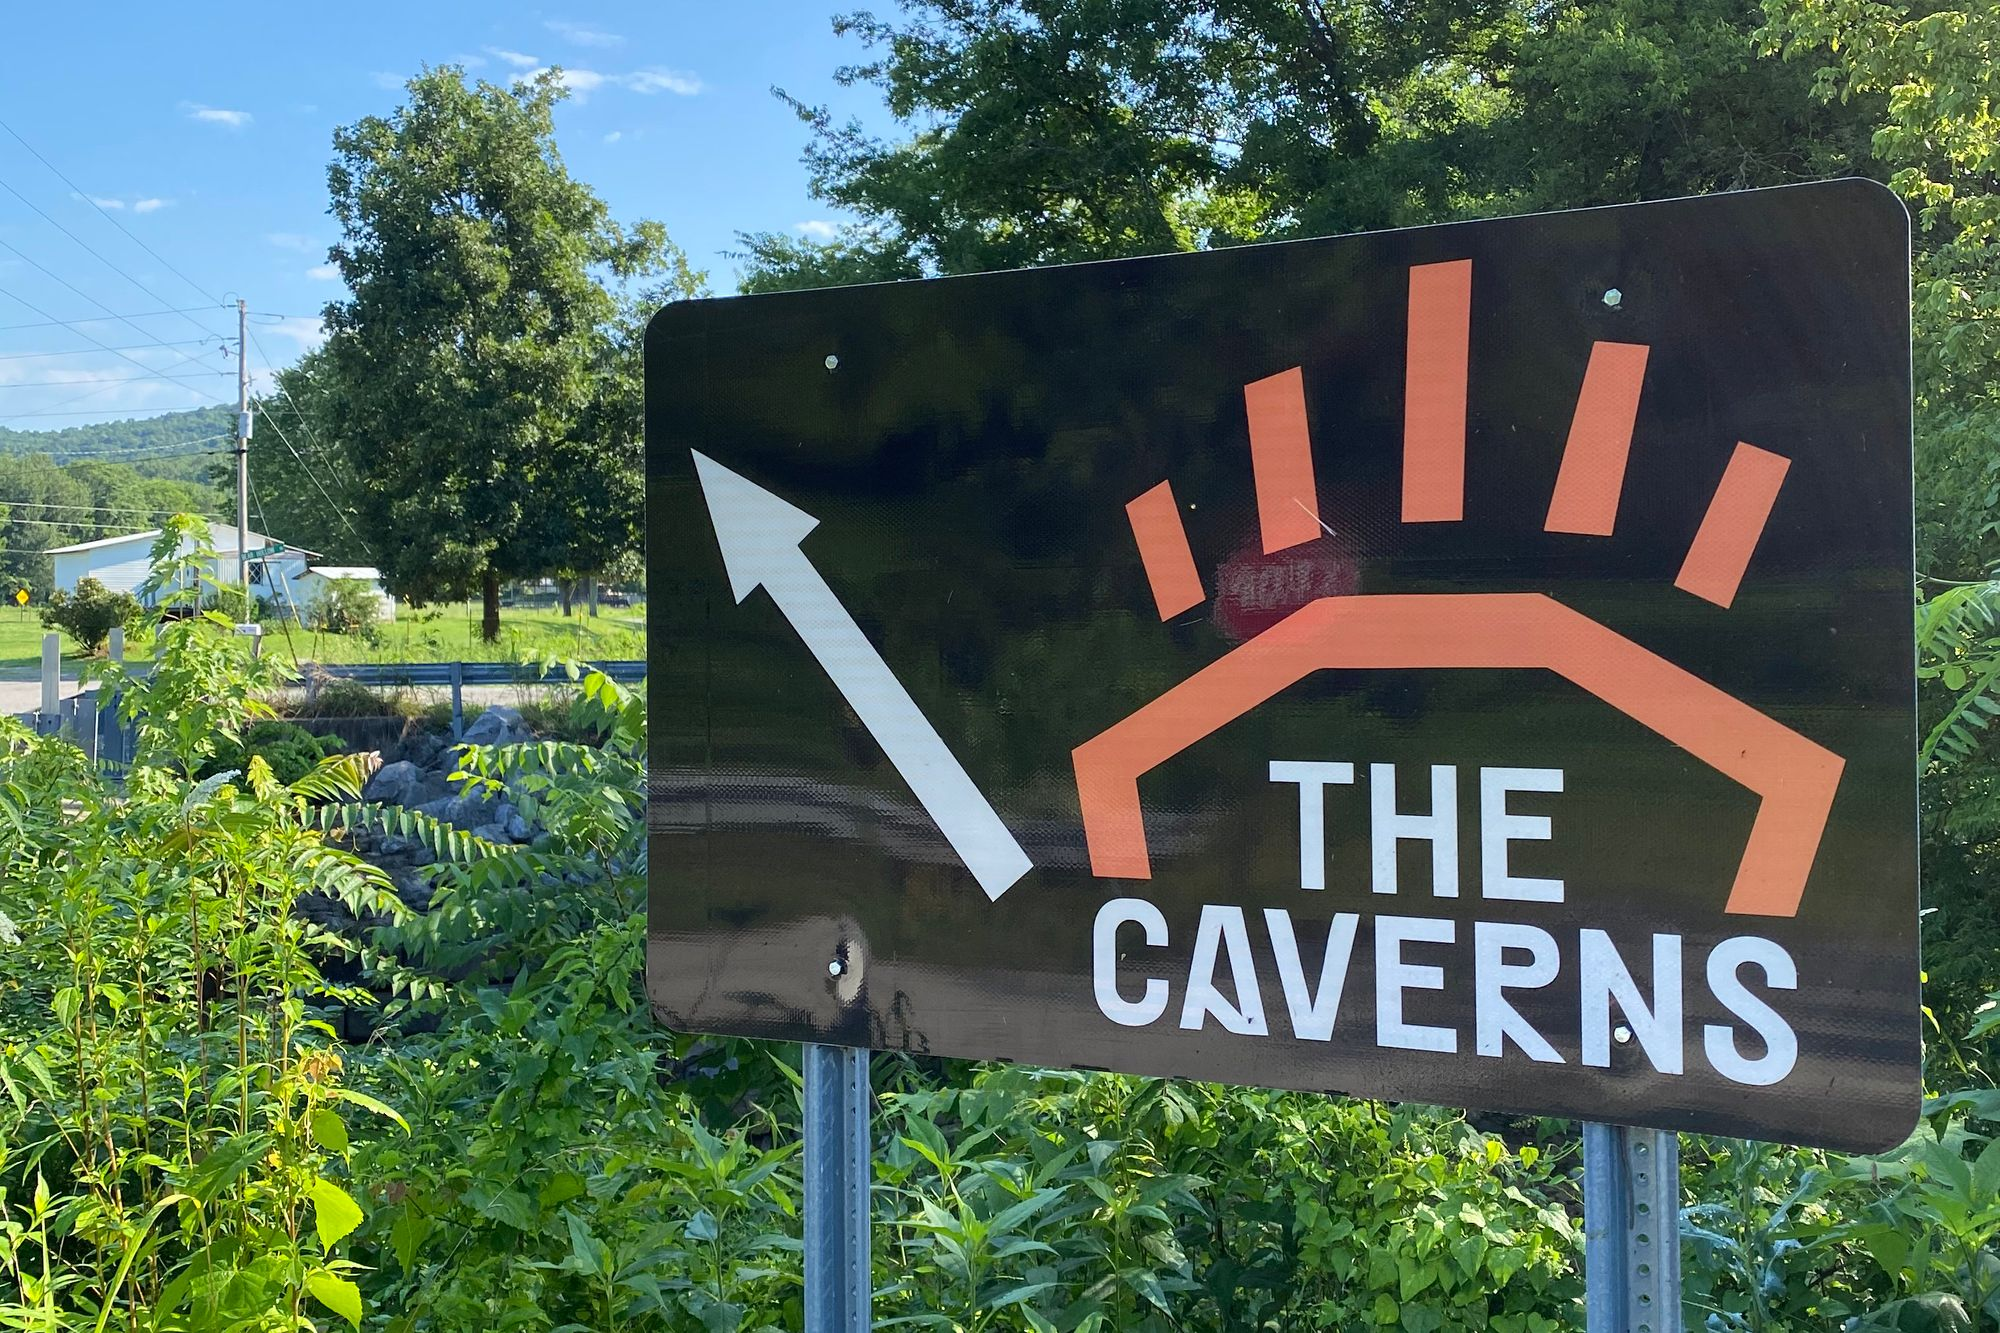 The Caverns road sign